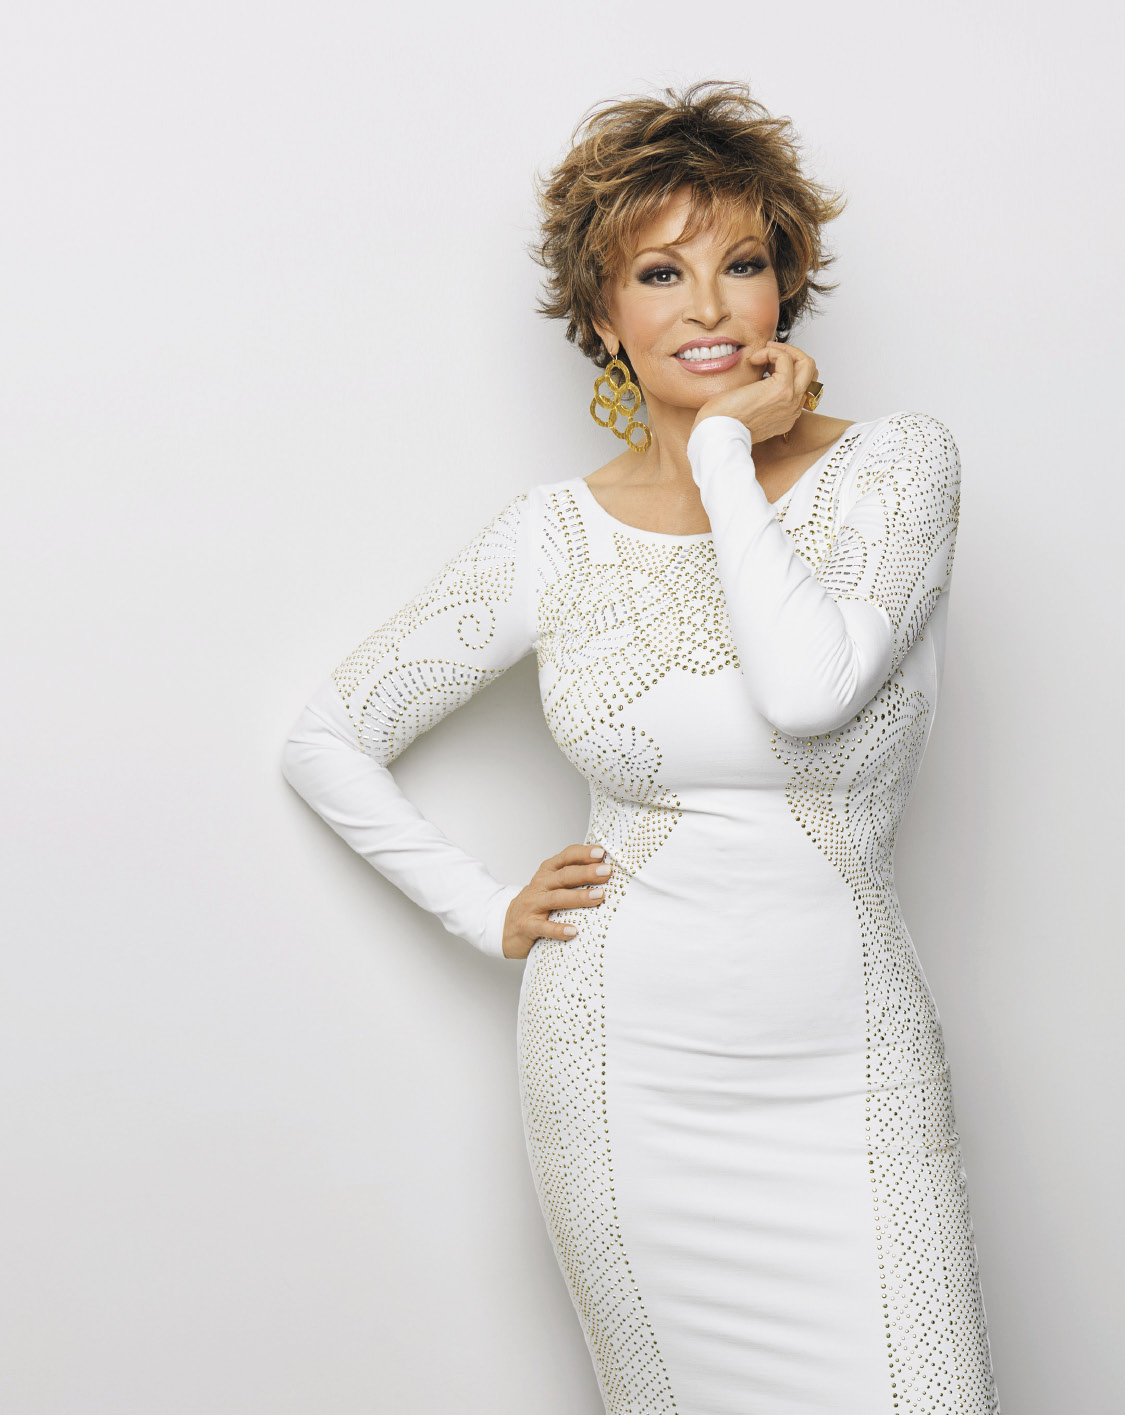 Raquel Welch wears Voltage, one of her best-selling favorites.